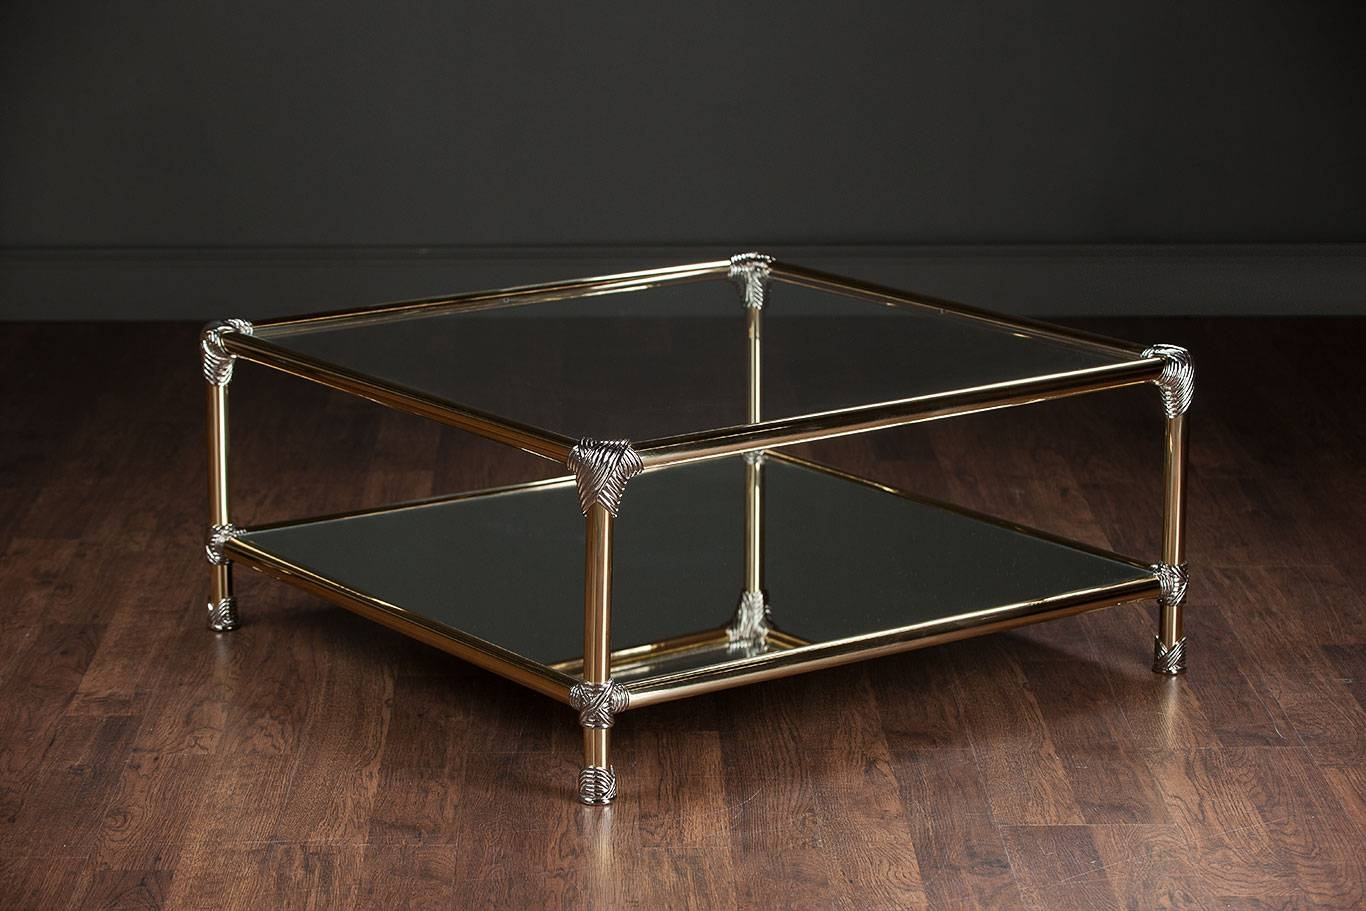 Vintage Brass And Chrome Coffee Table - Mecox Gardens inside Chrome Coffee Tables (Image 25 of 30)